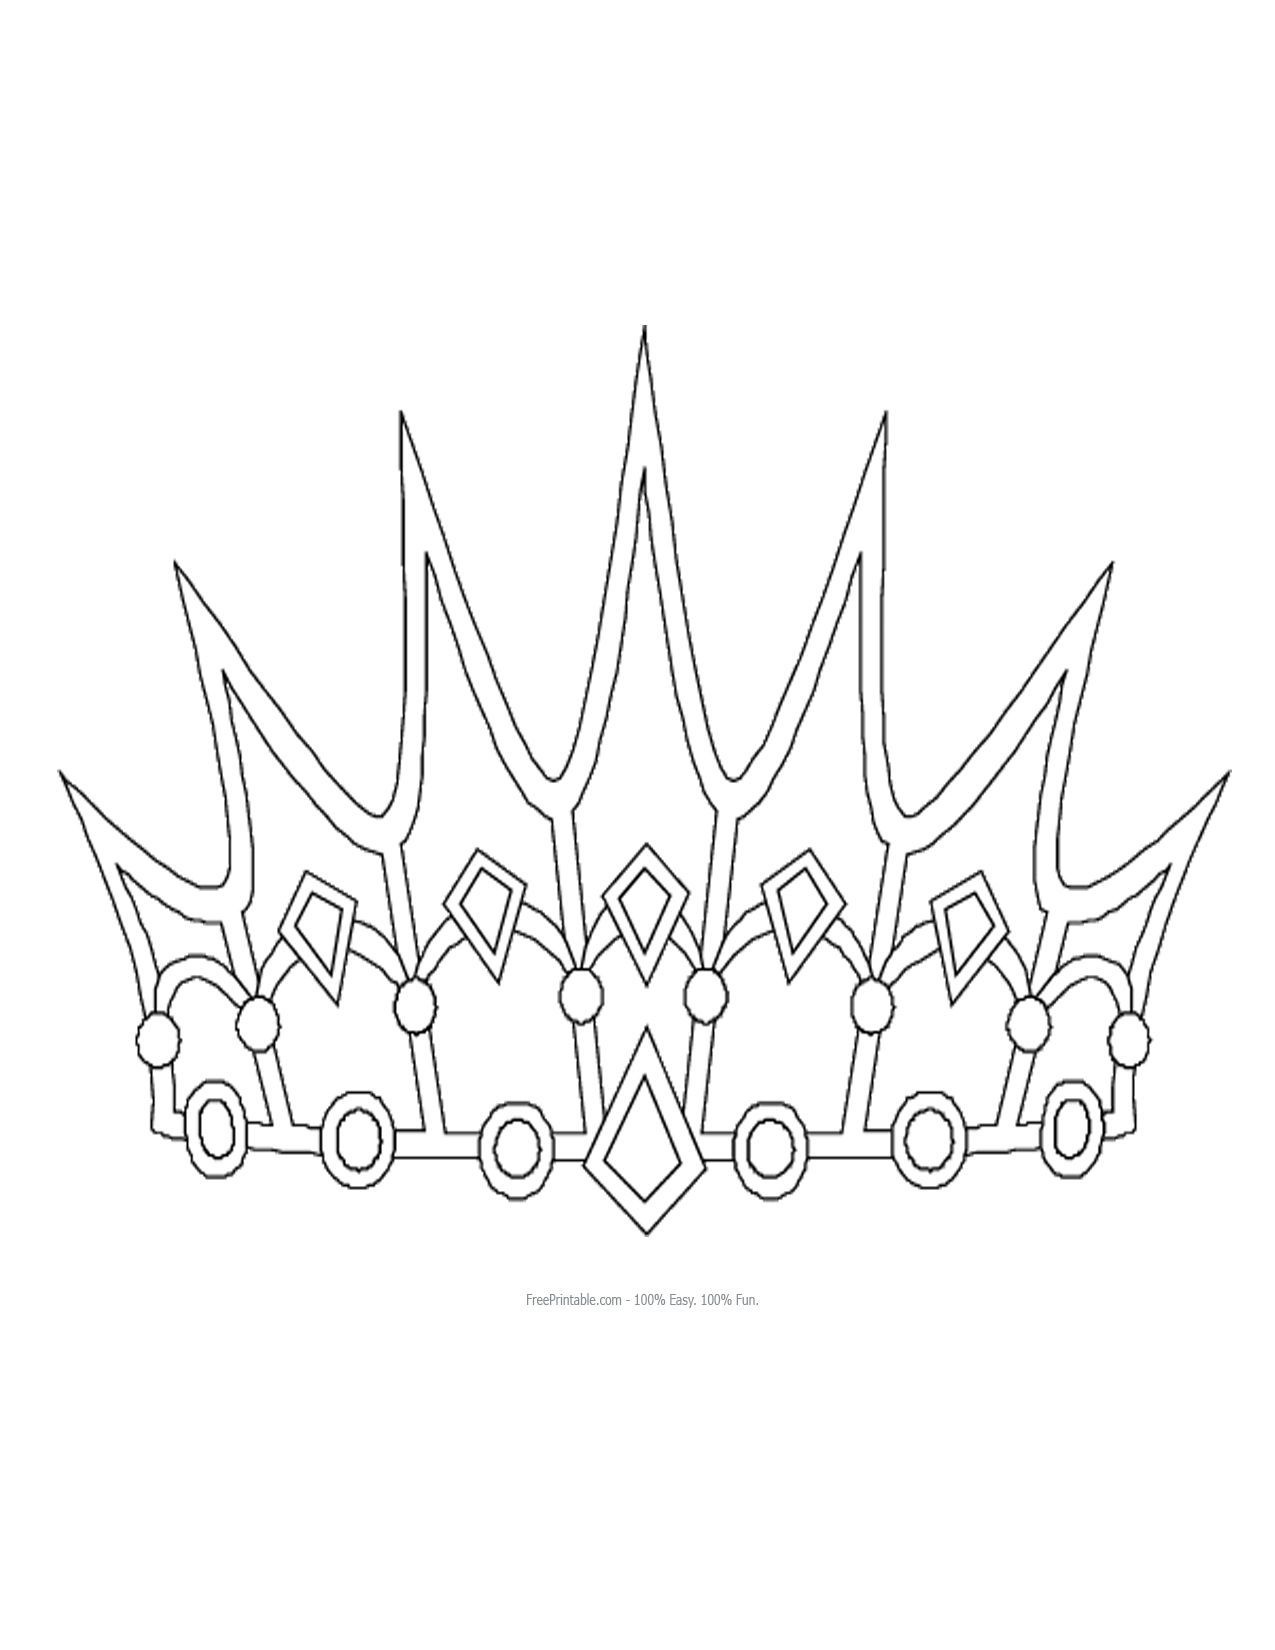 photo regarding Crown Template Printable titled Inspiring King And Queen Crown Templates Colouring Within just